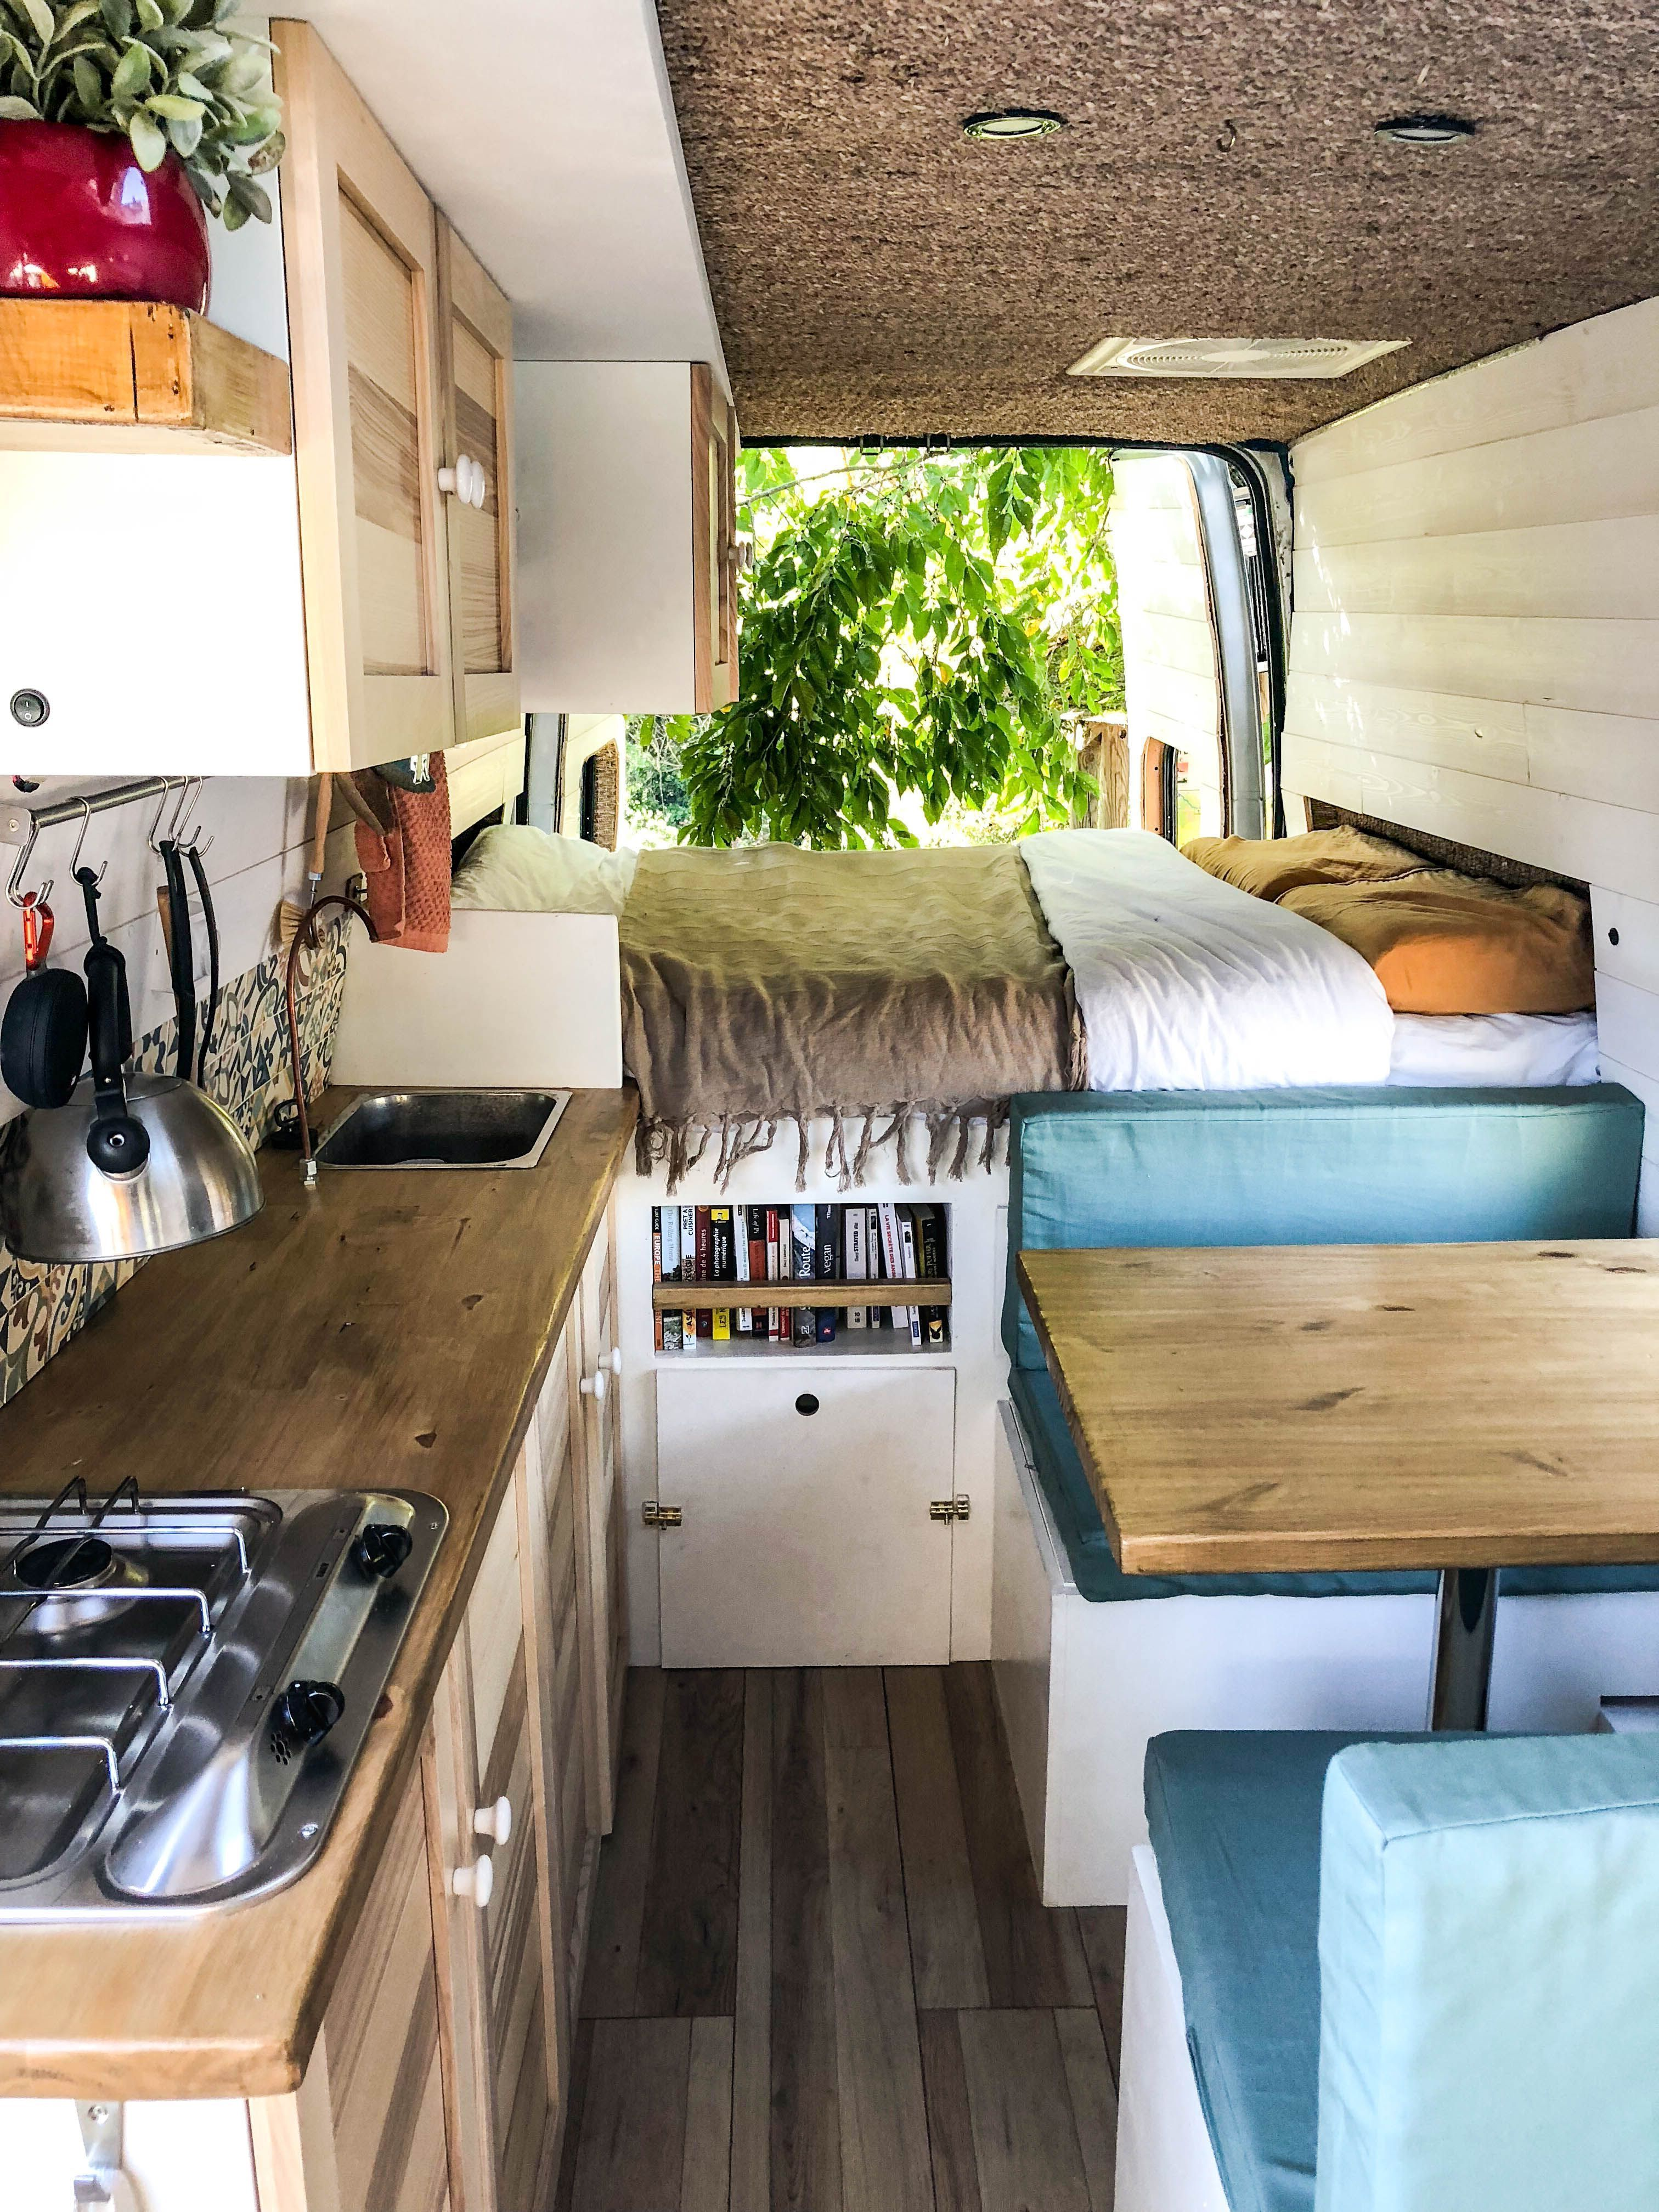 19 do-it-yourself inspirations for remodeling van campers 19 do-it-yourself inspirations for remode